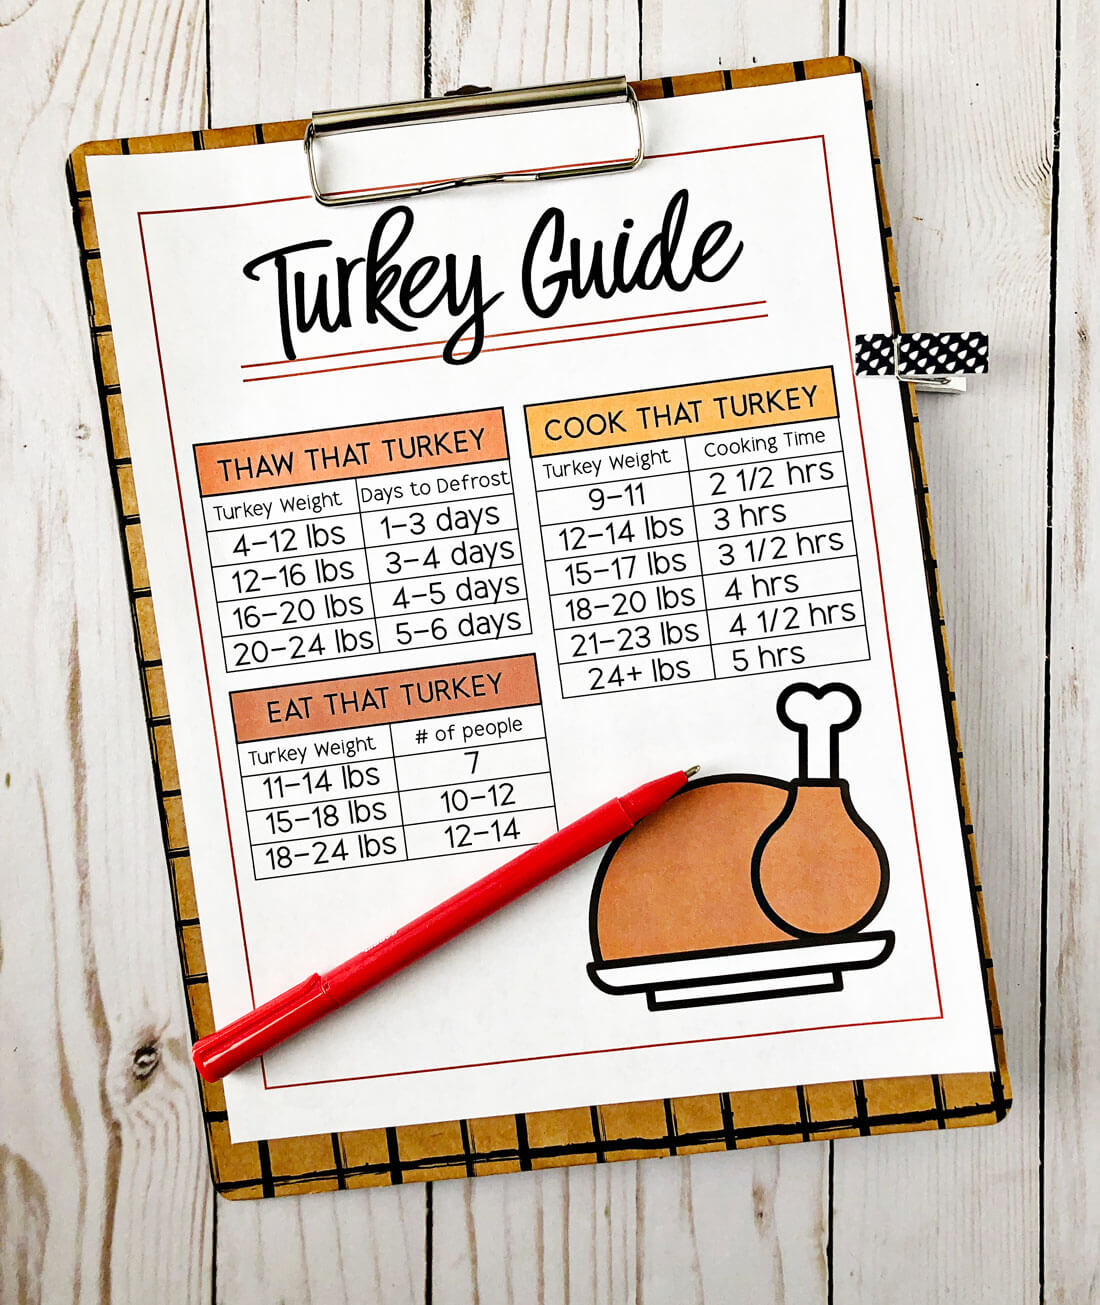 Just in time for Thanksgiving: 4 recalled turkey products to avoid